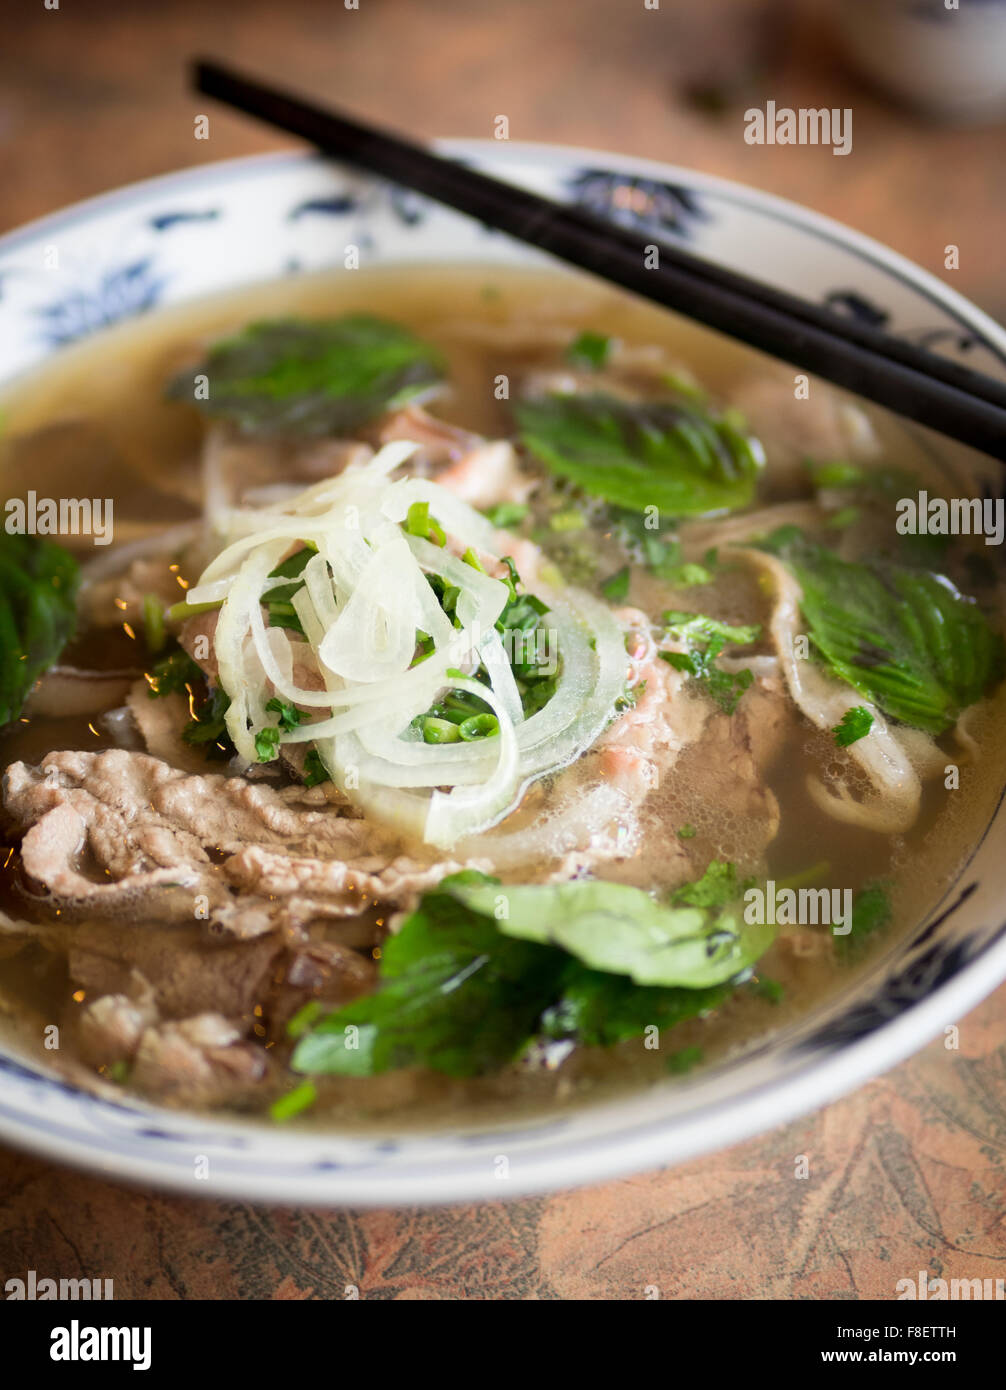 A bowl of beef brisket pho, a popular Vietnamese noodle soup. Stock Photo